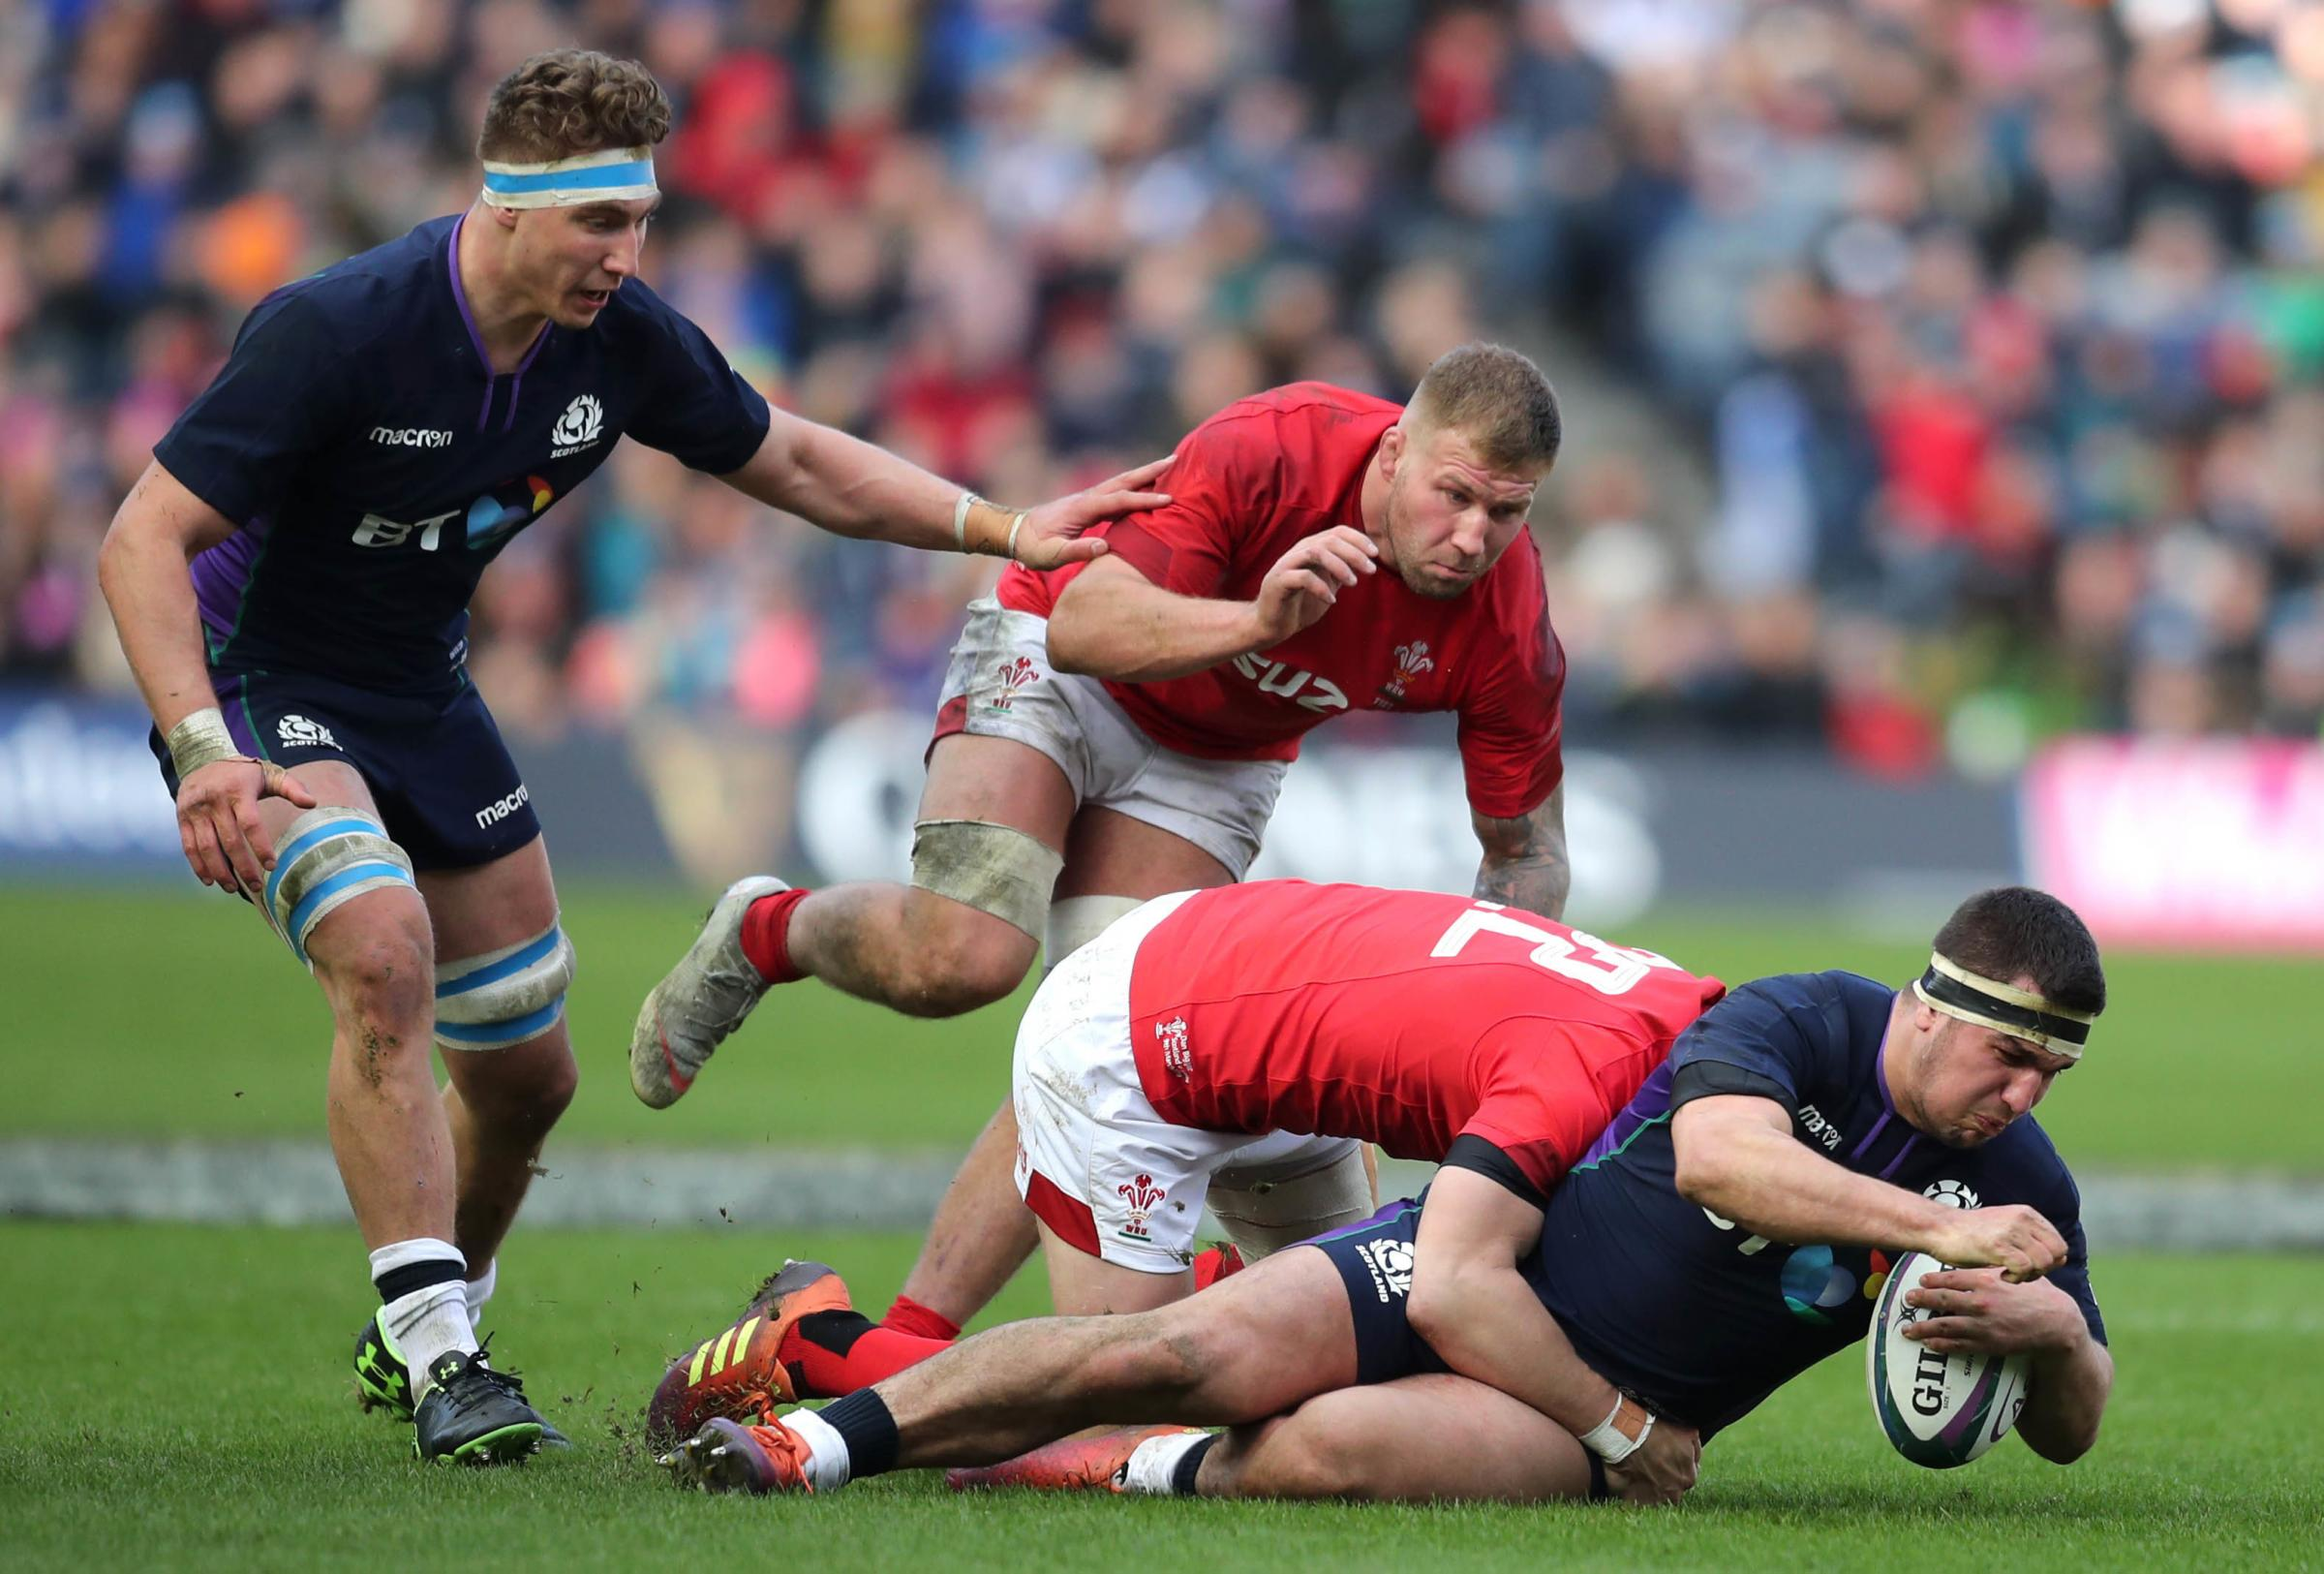 STRONG: Wales stood firm